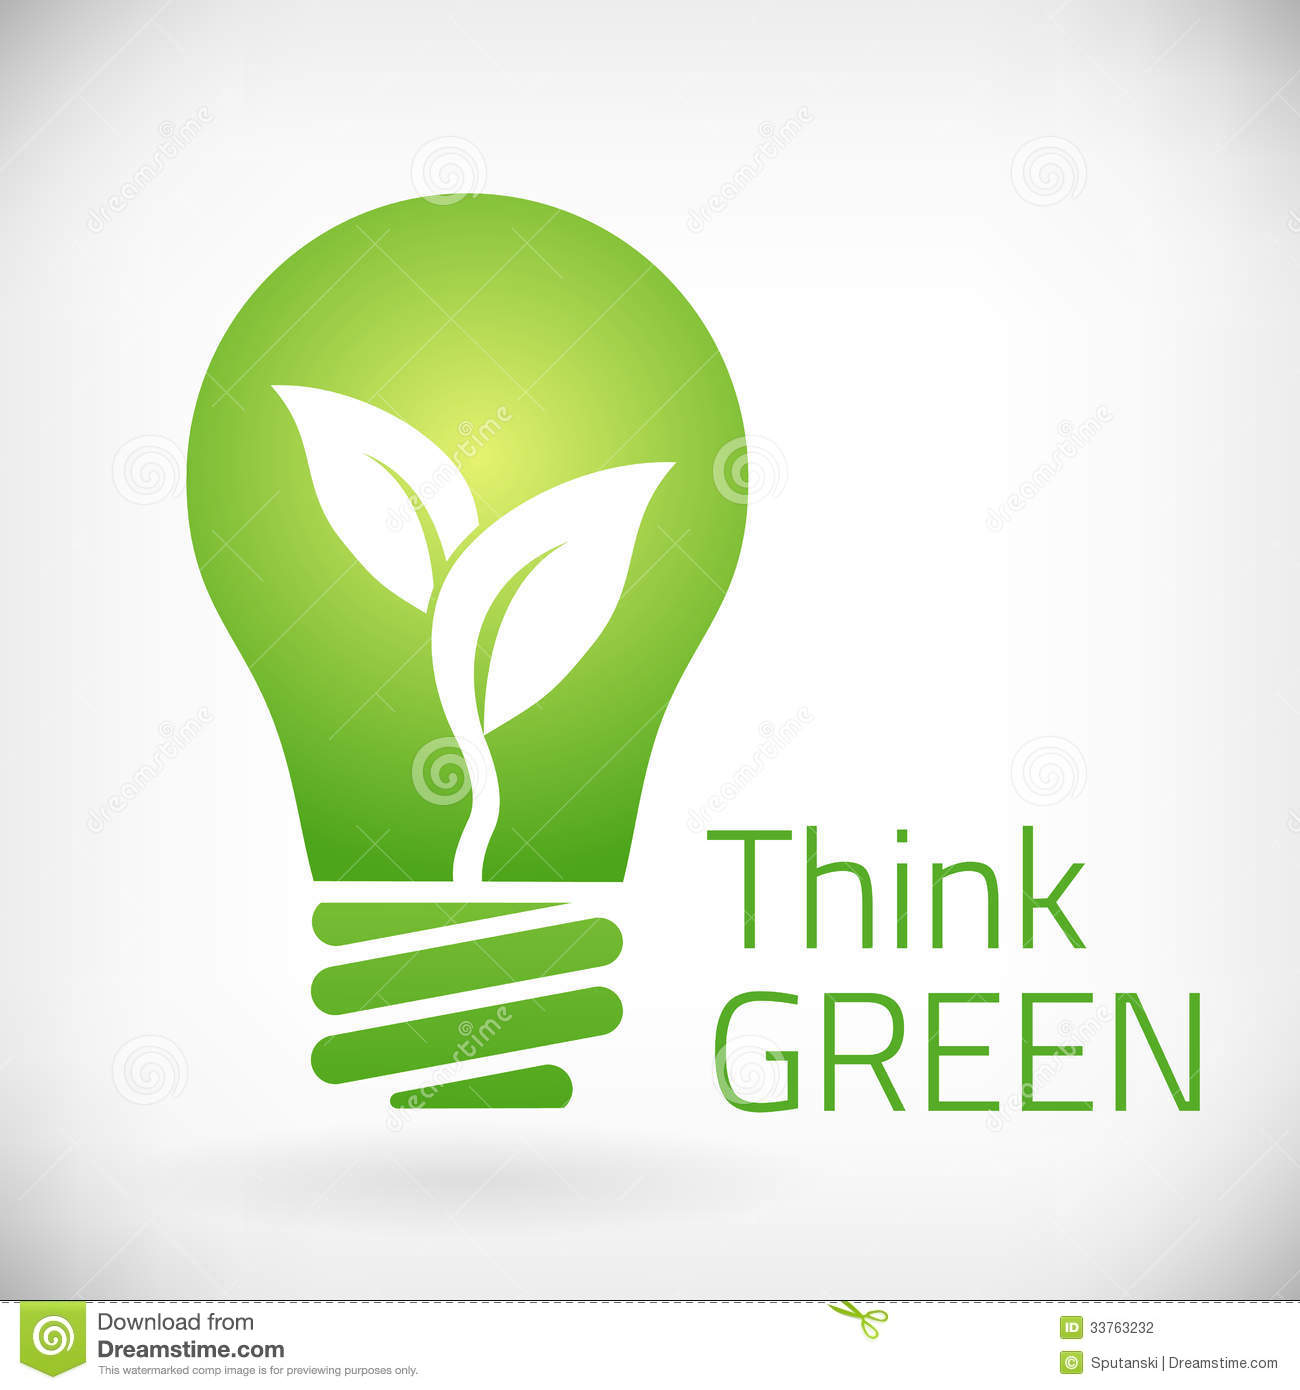 Think green eco bulb illustration. from bakground. layered.